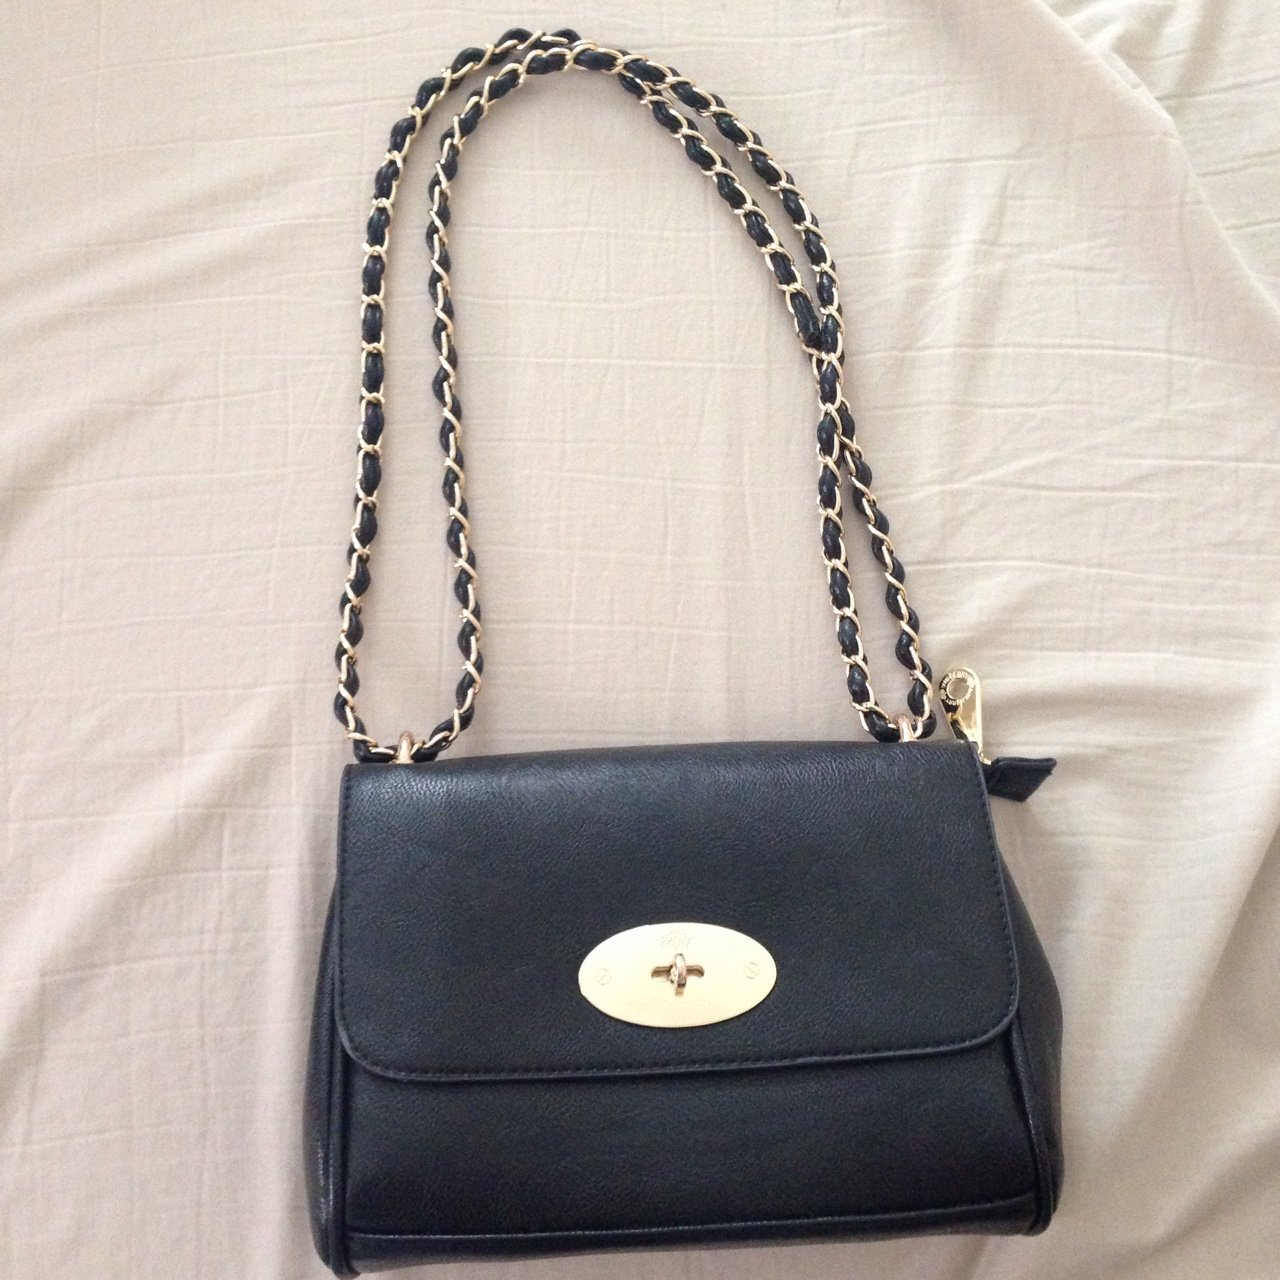 Lily Depop Replica With Bag Mulberry In Selling This Gold Black nmN0yvOw8